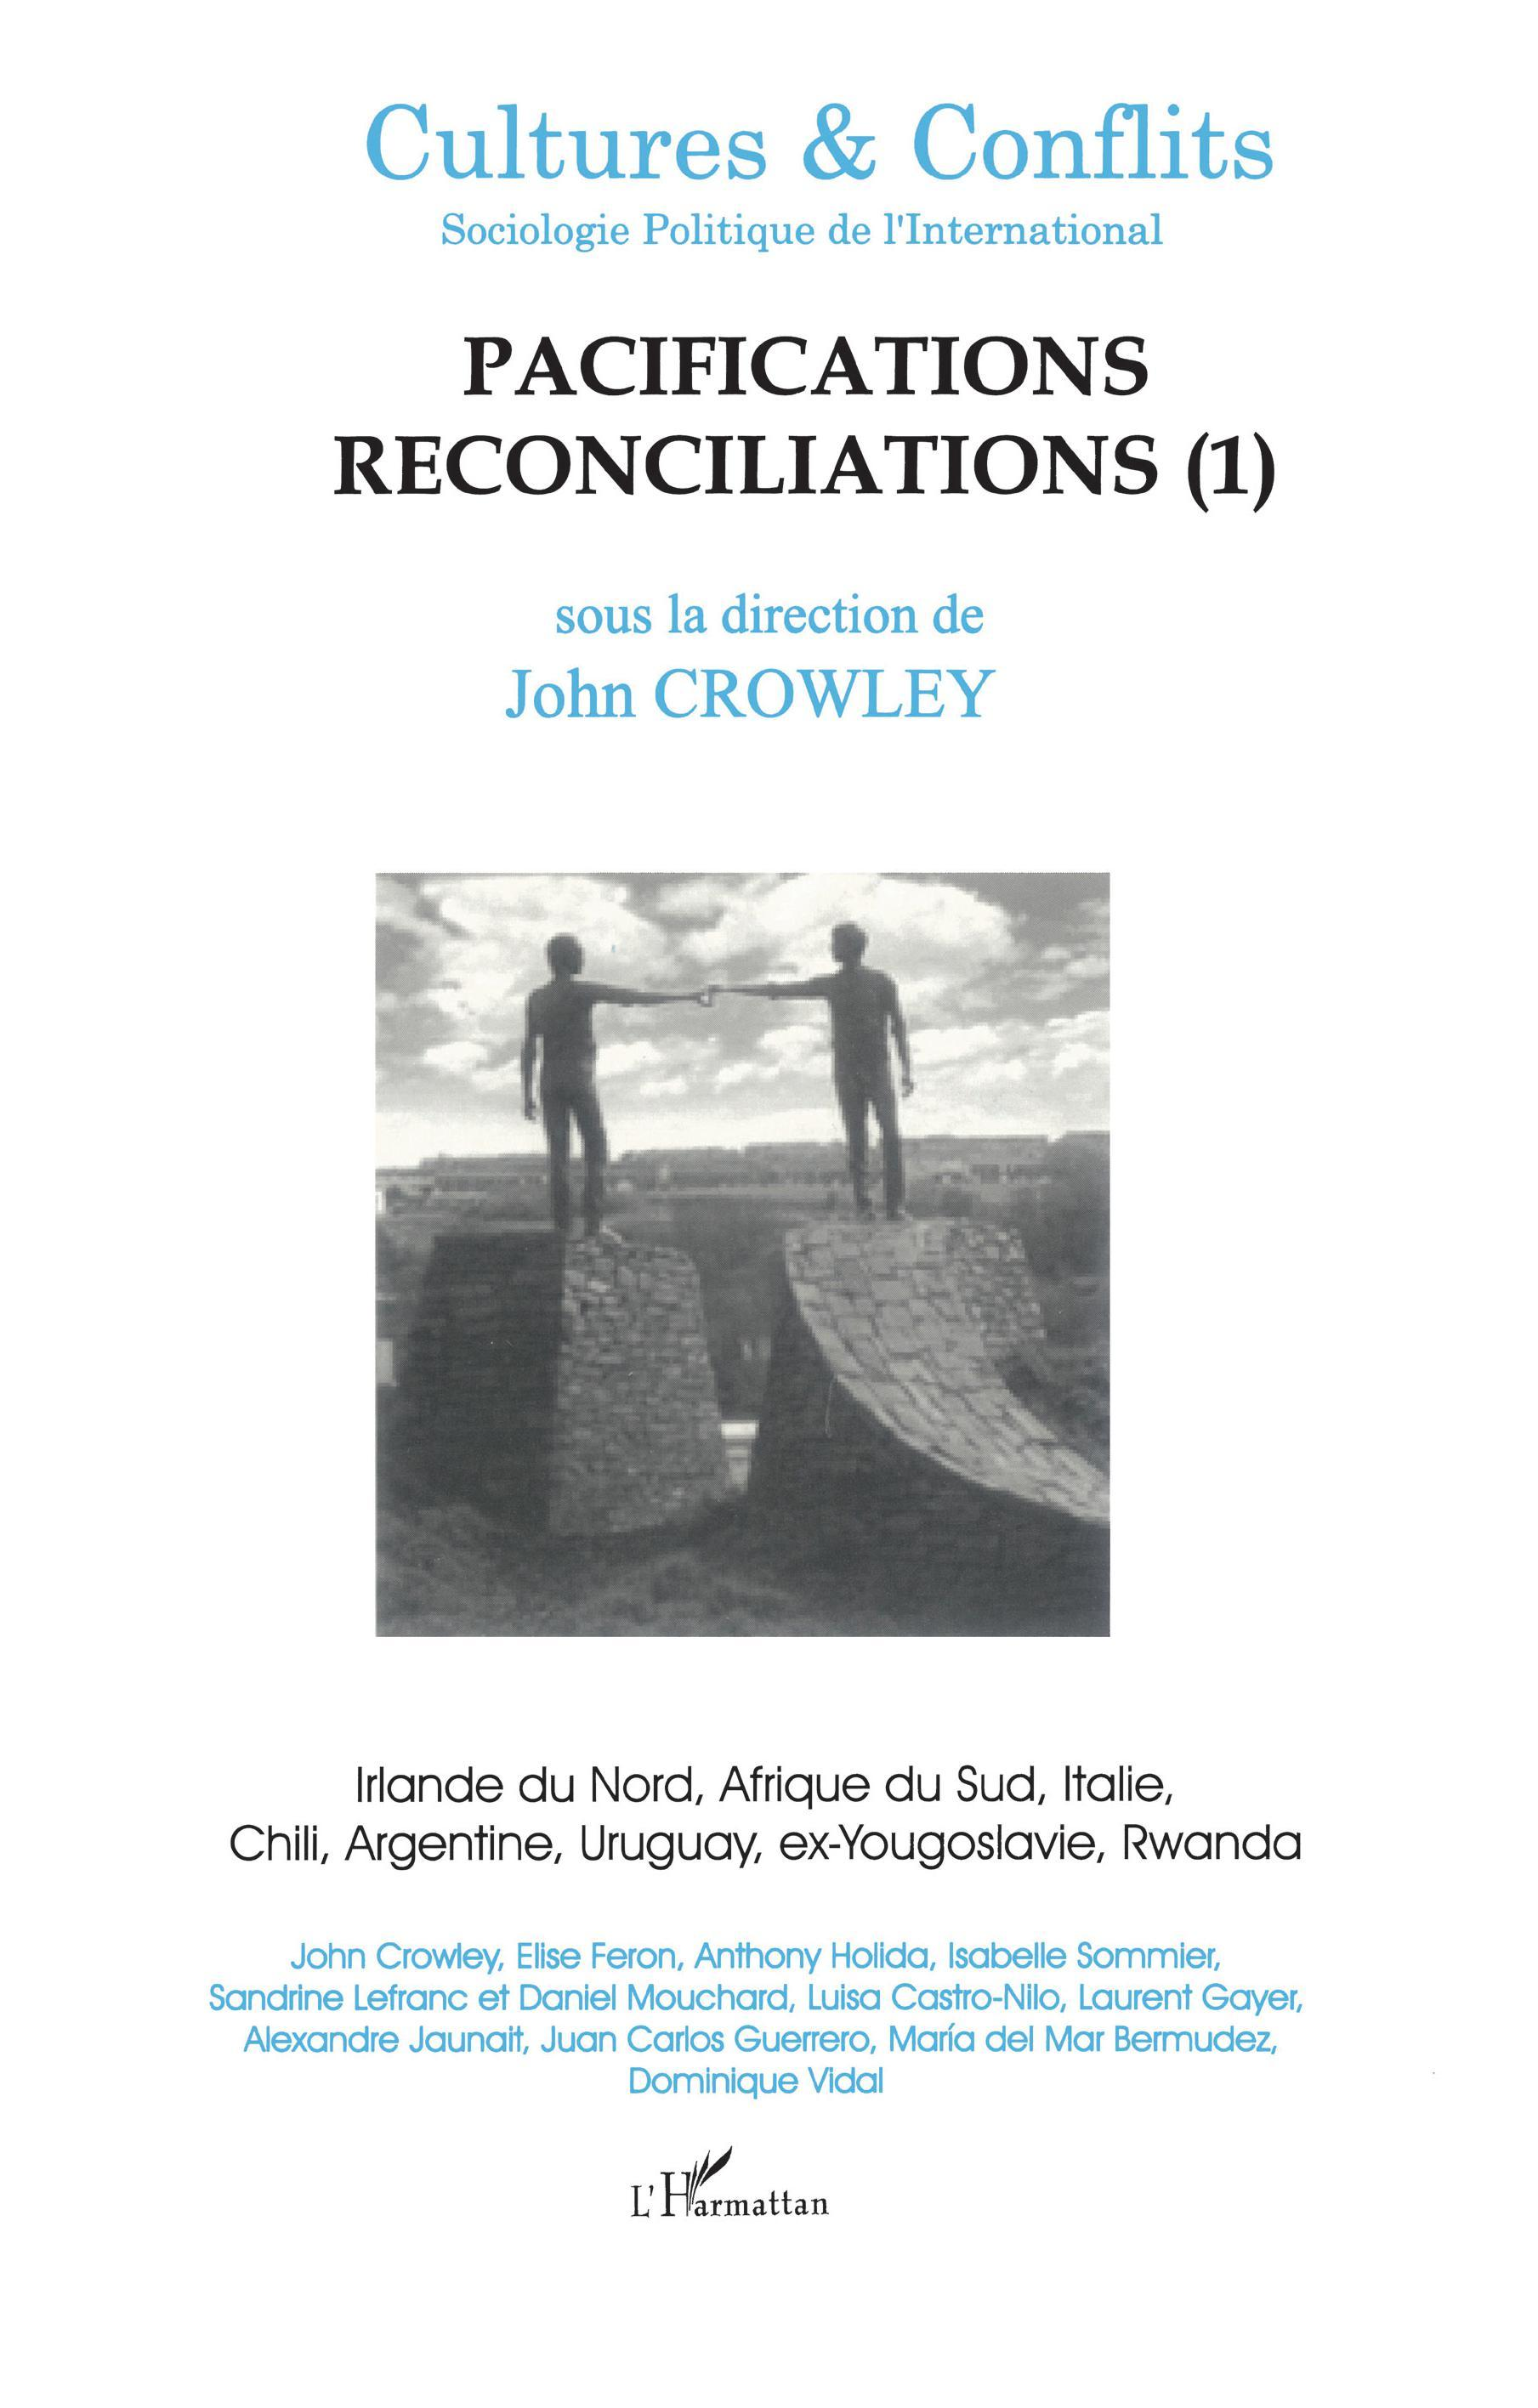 PACIFICATIONS RECONCILIATIONS